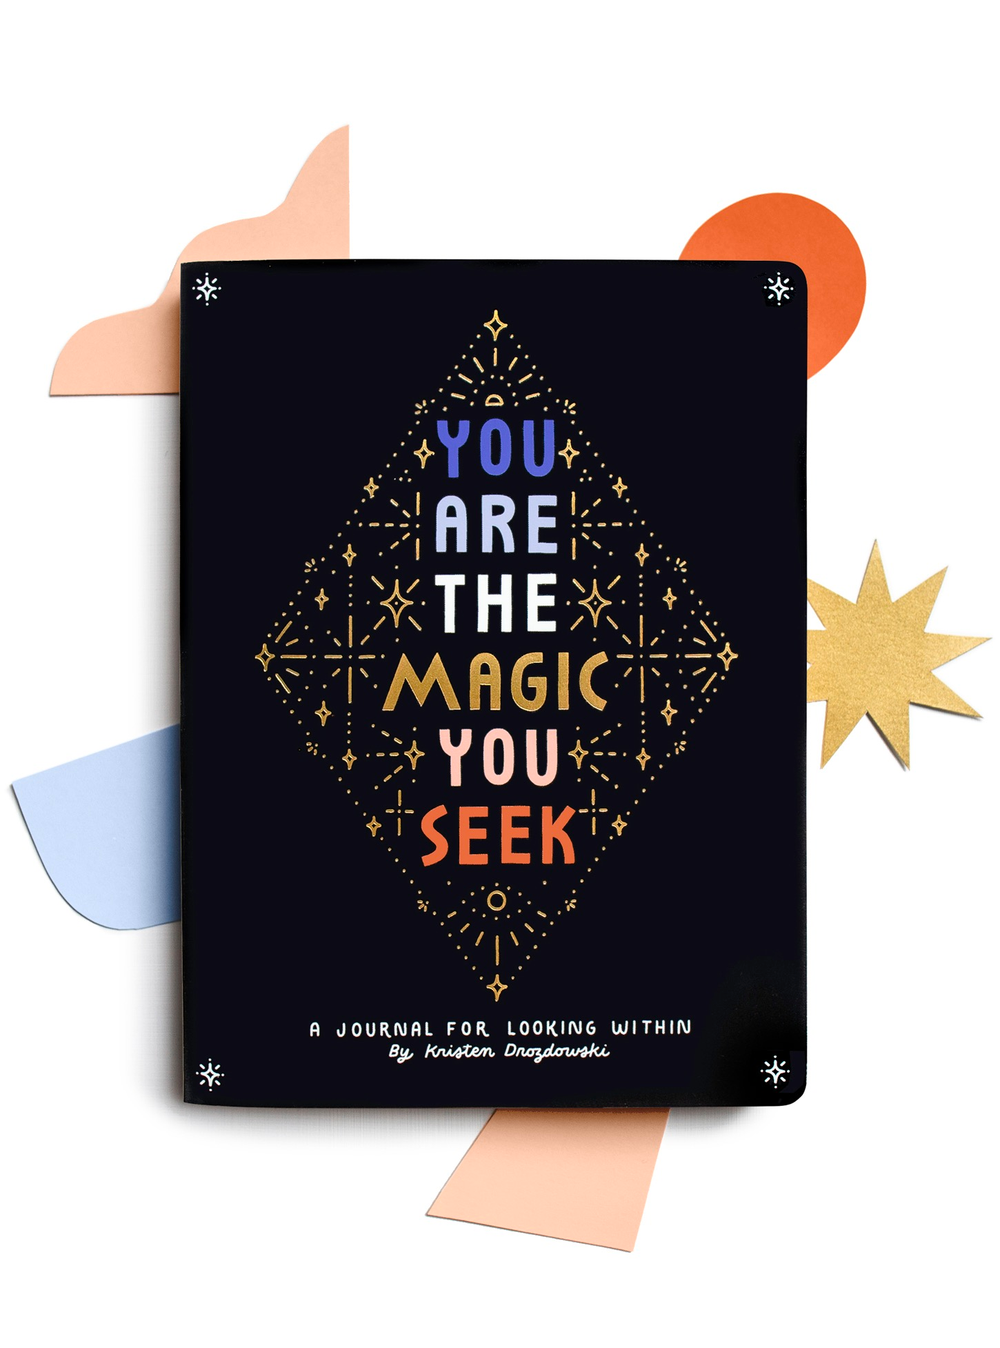 You Are The Magic You Seek - Kristen Drozdowski